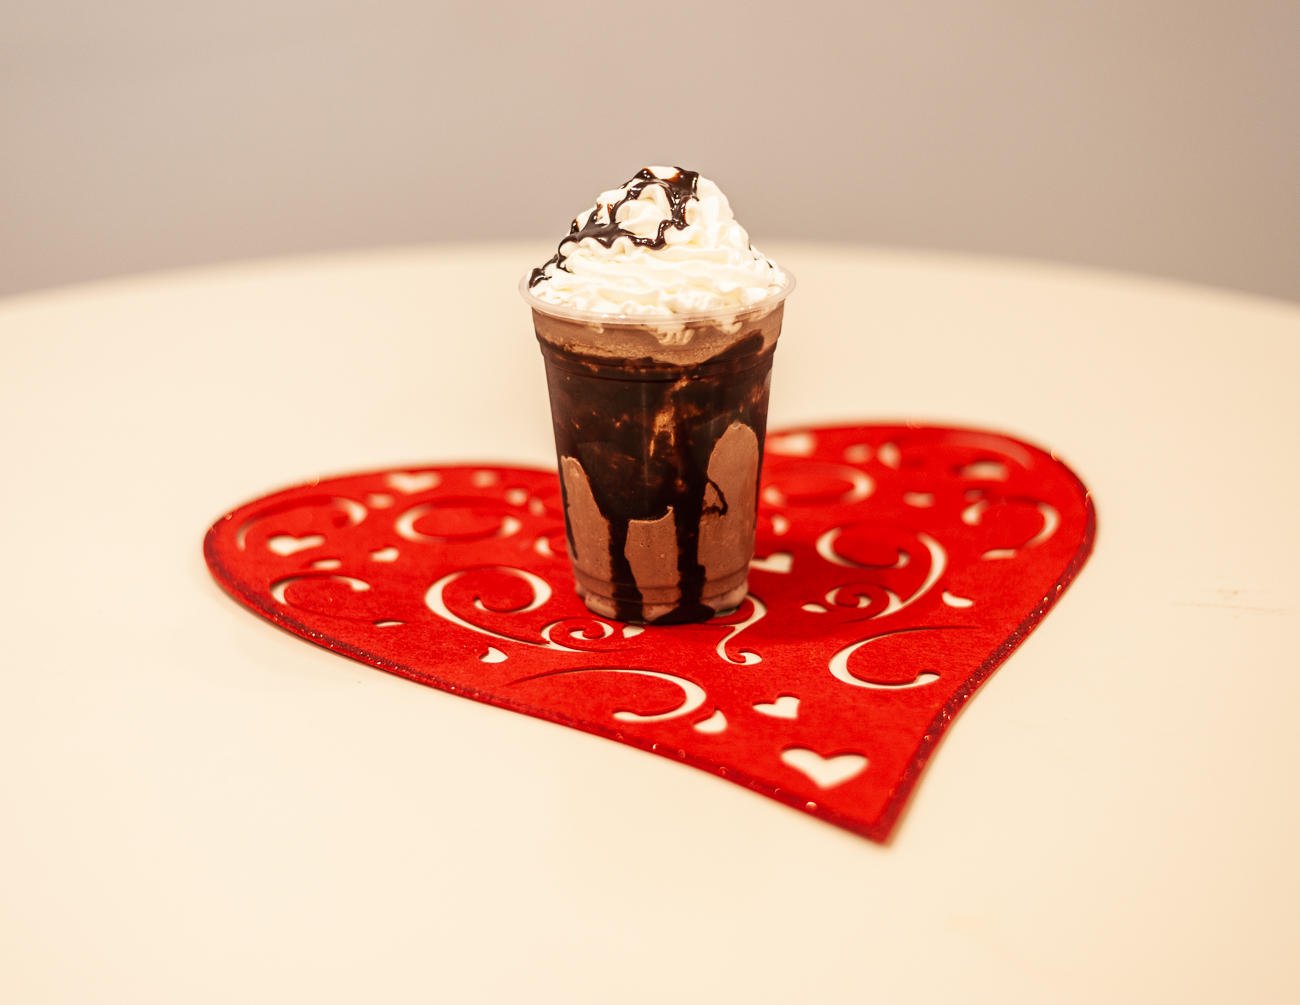 Chocolate frappe{ }/ Image: Kellie Coleman // Published: 1.31.21